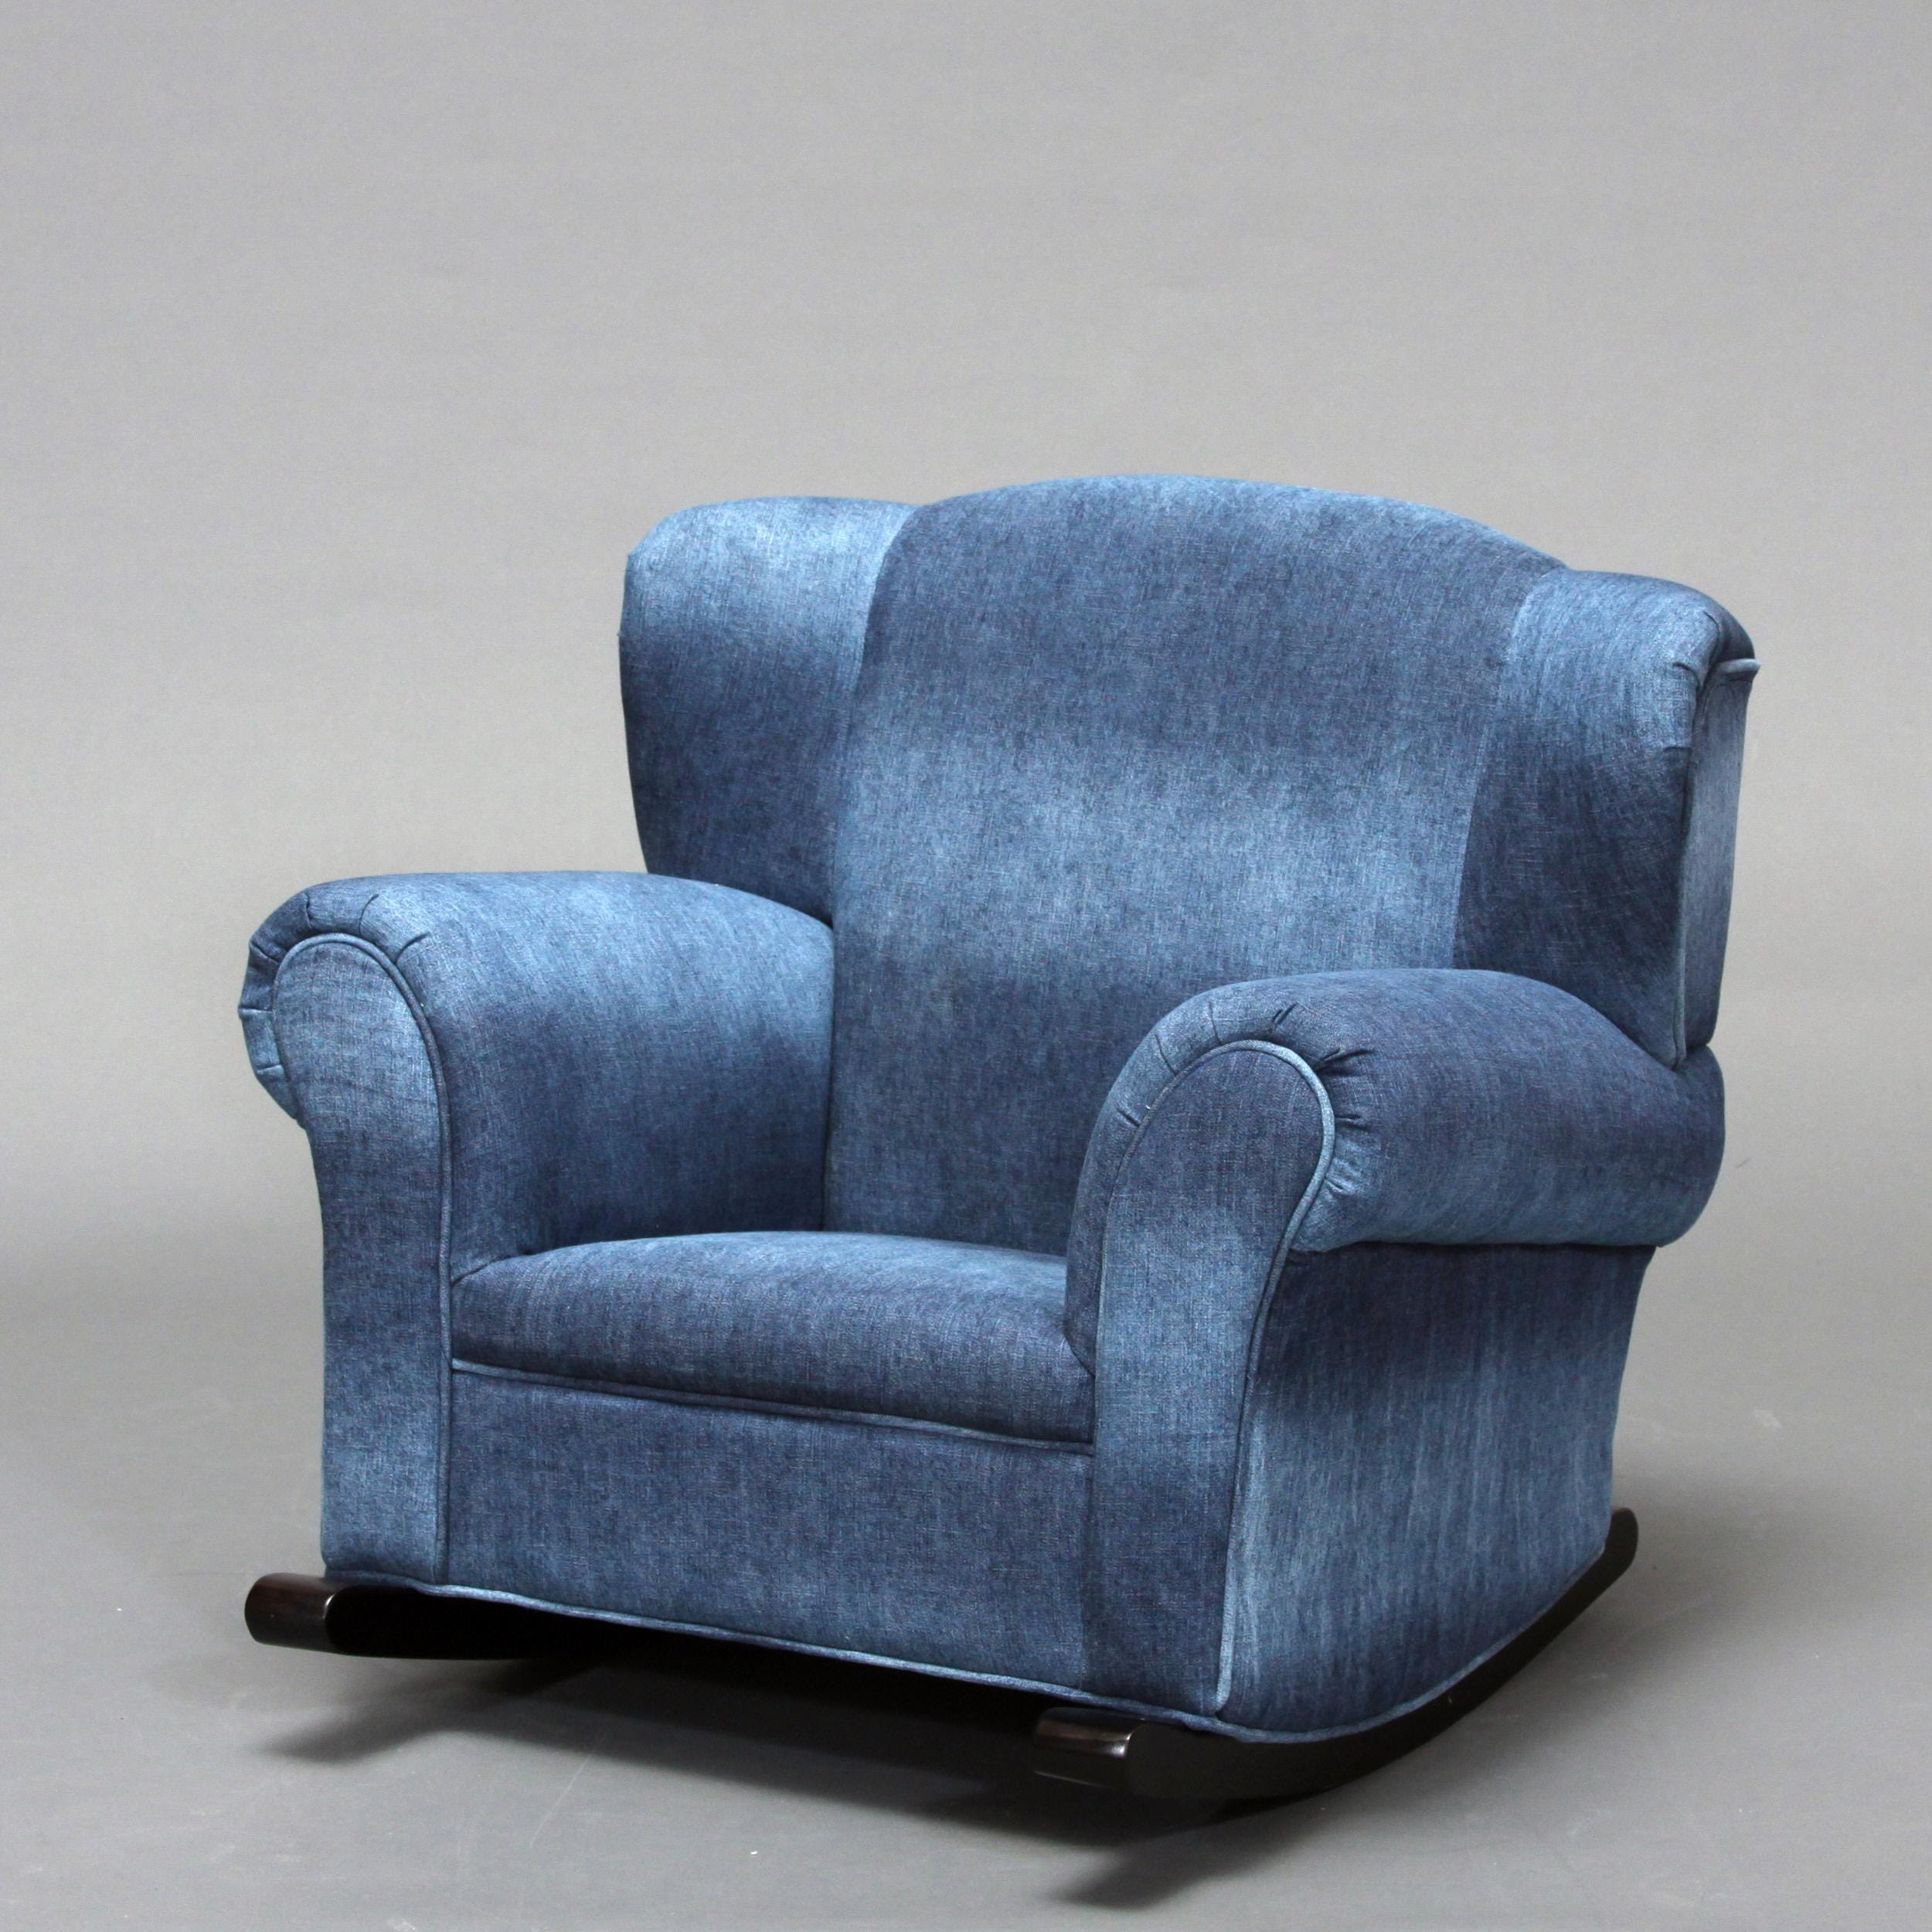 Child S Blue Denim Rocking Chair Free Shipping Today Overstock Com 13208784